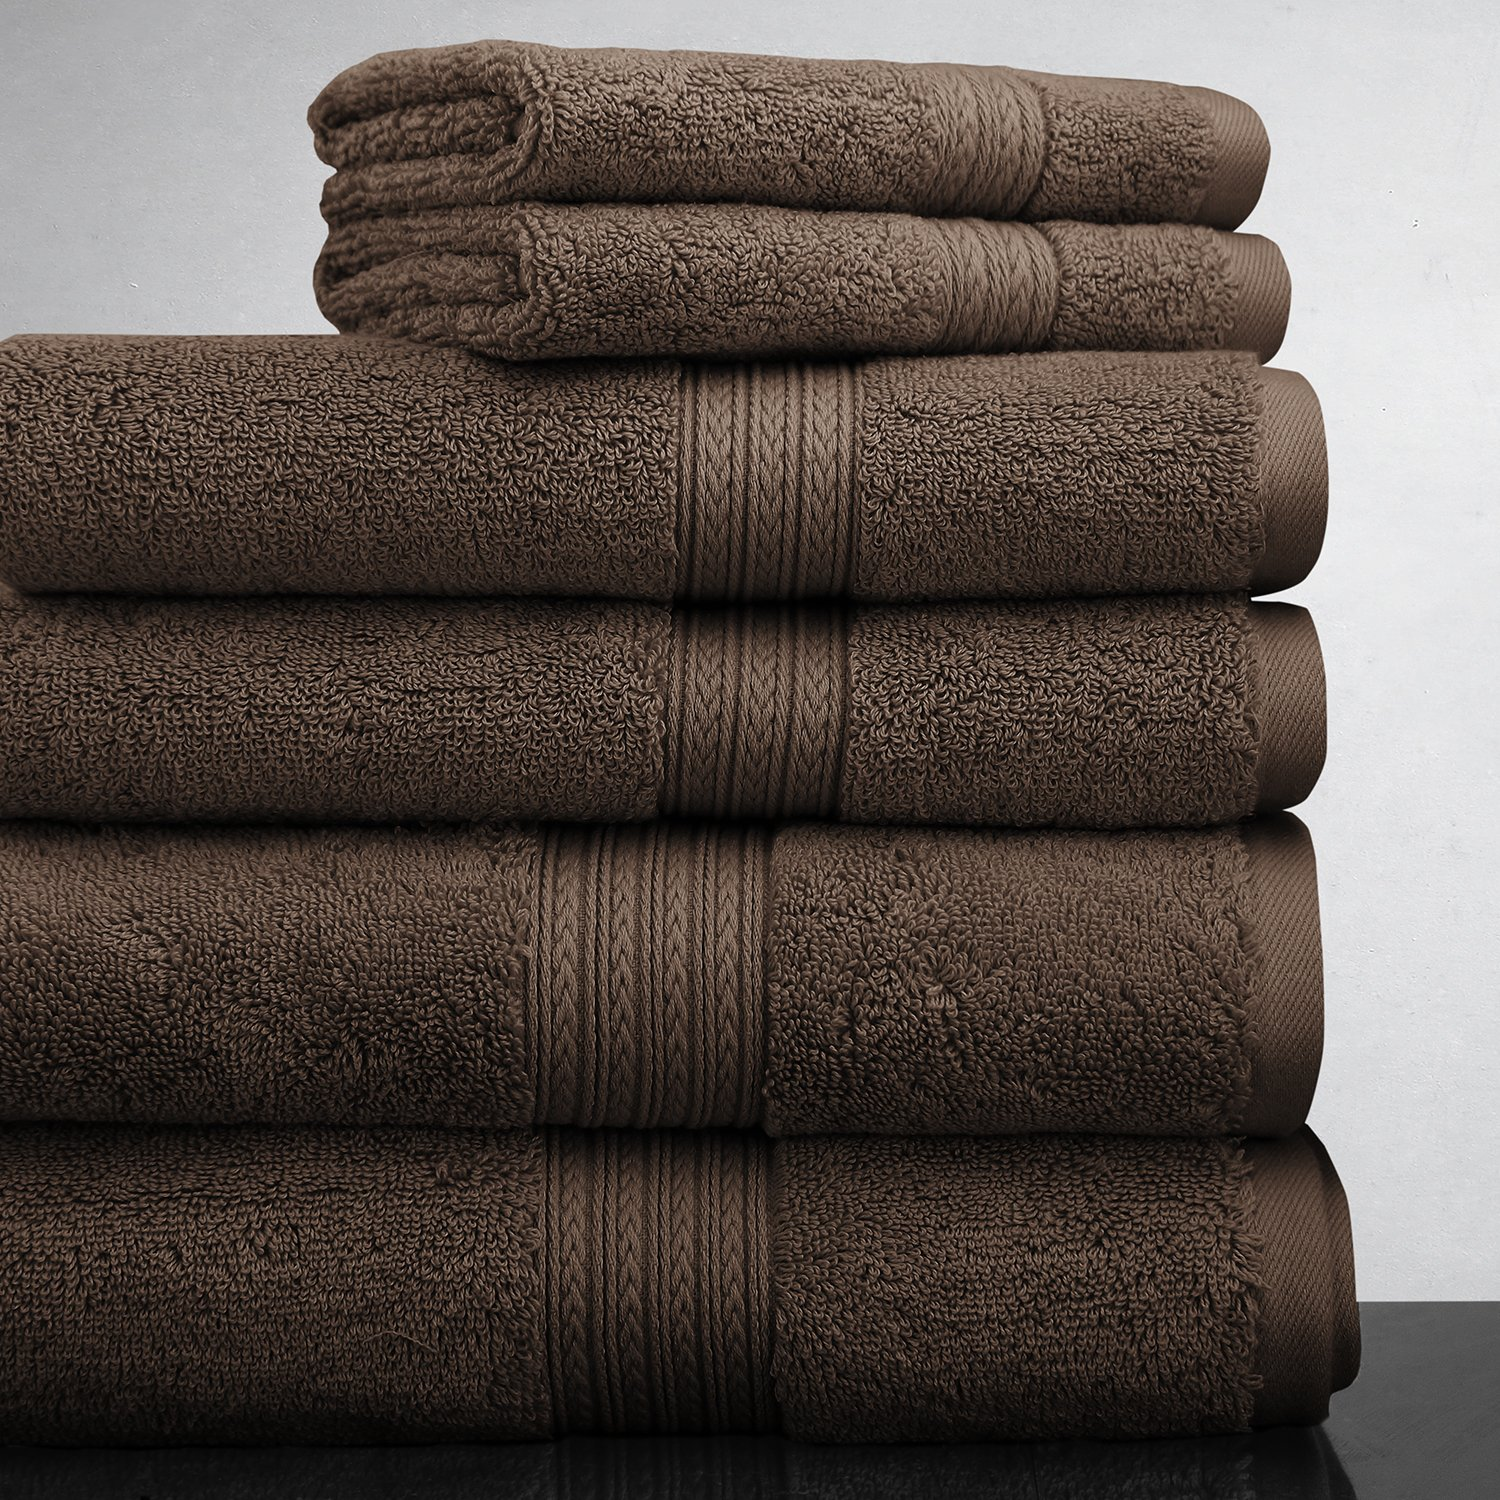 Luxor Linens New Arrival Bliss Collection Egyptian Cotton Classic 6-Piece Towel Set - Chocolate - with Gift Packaging